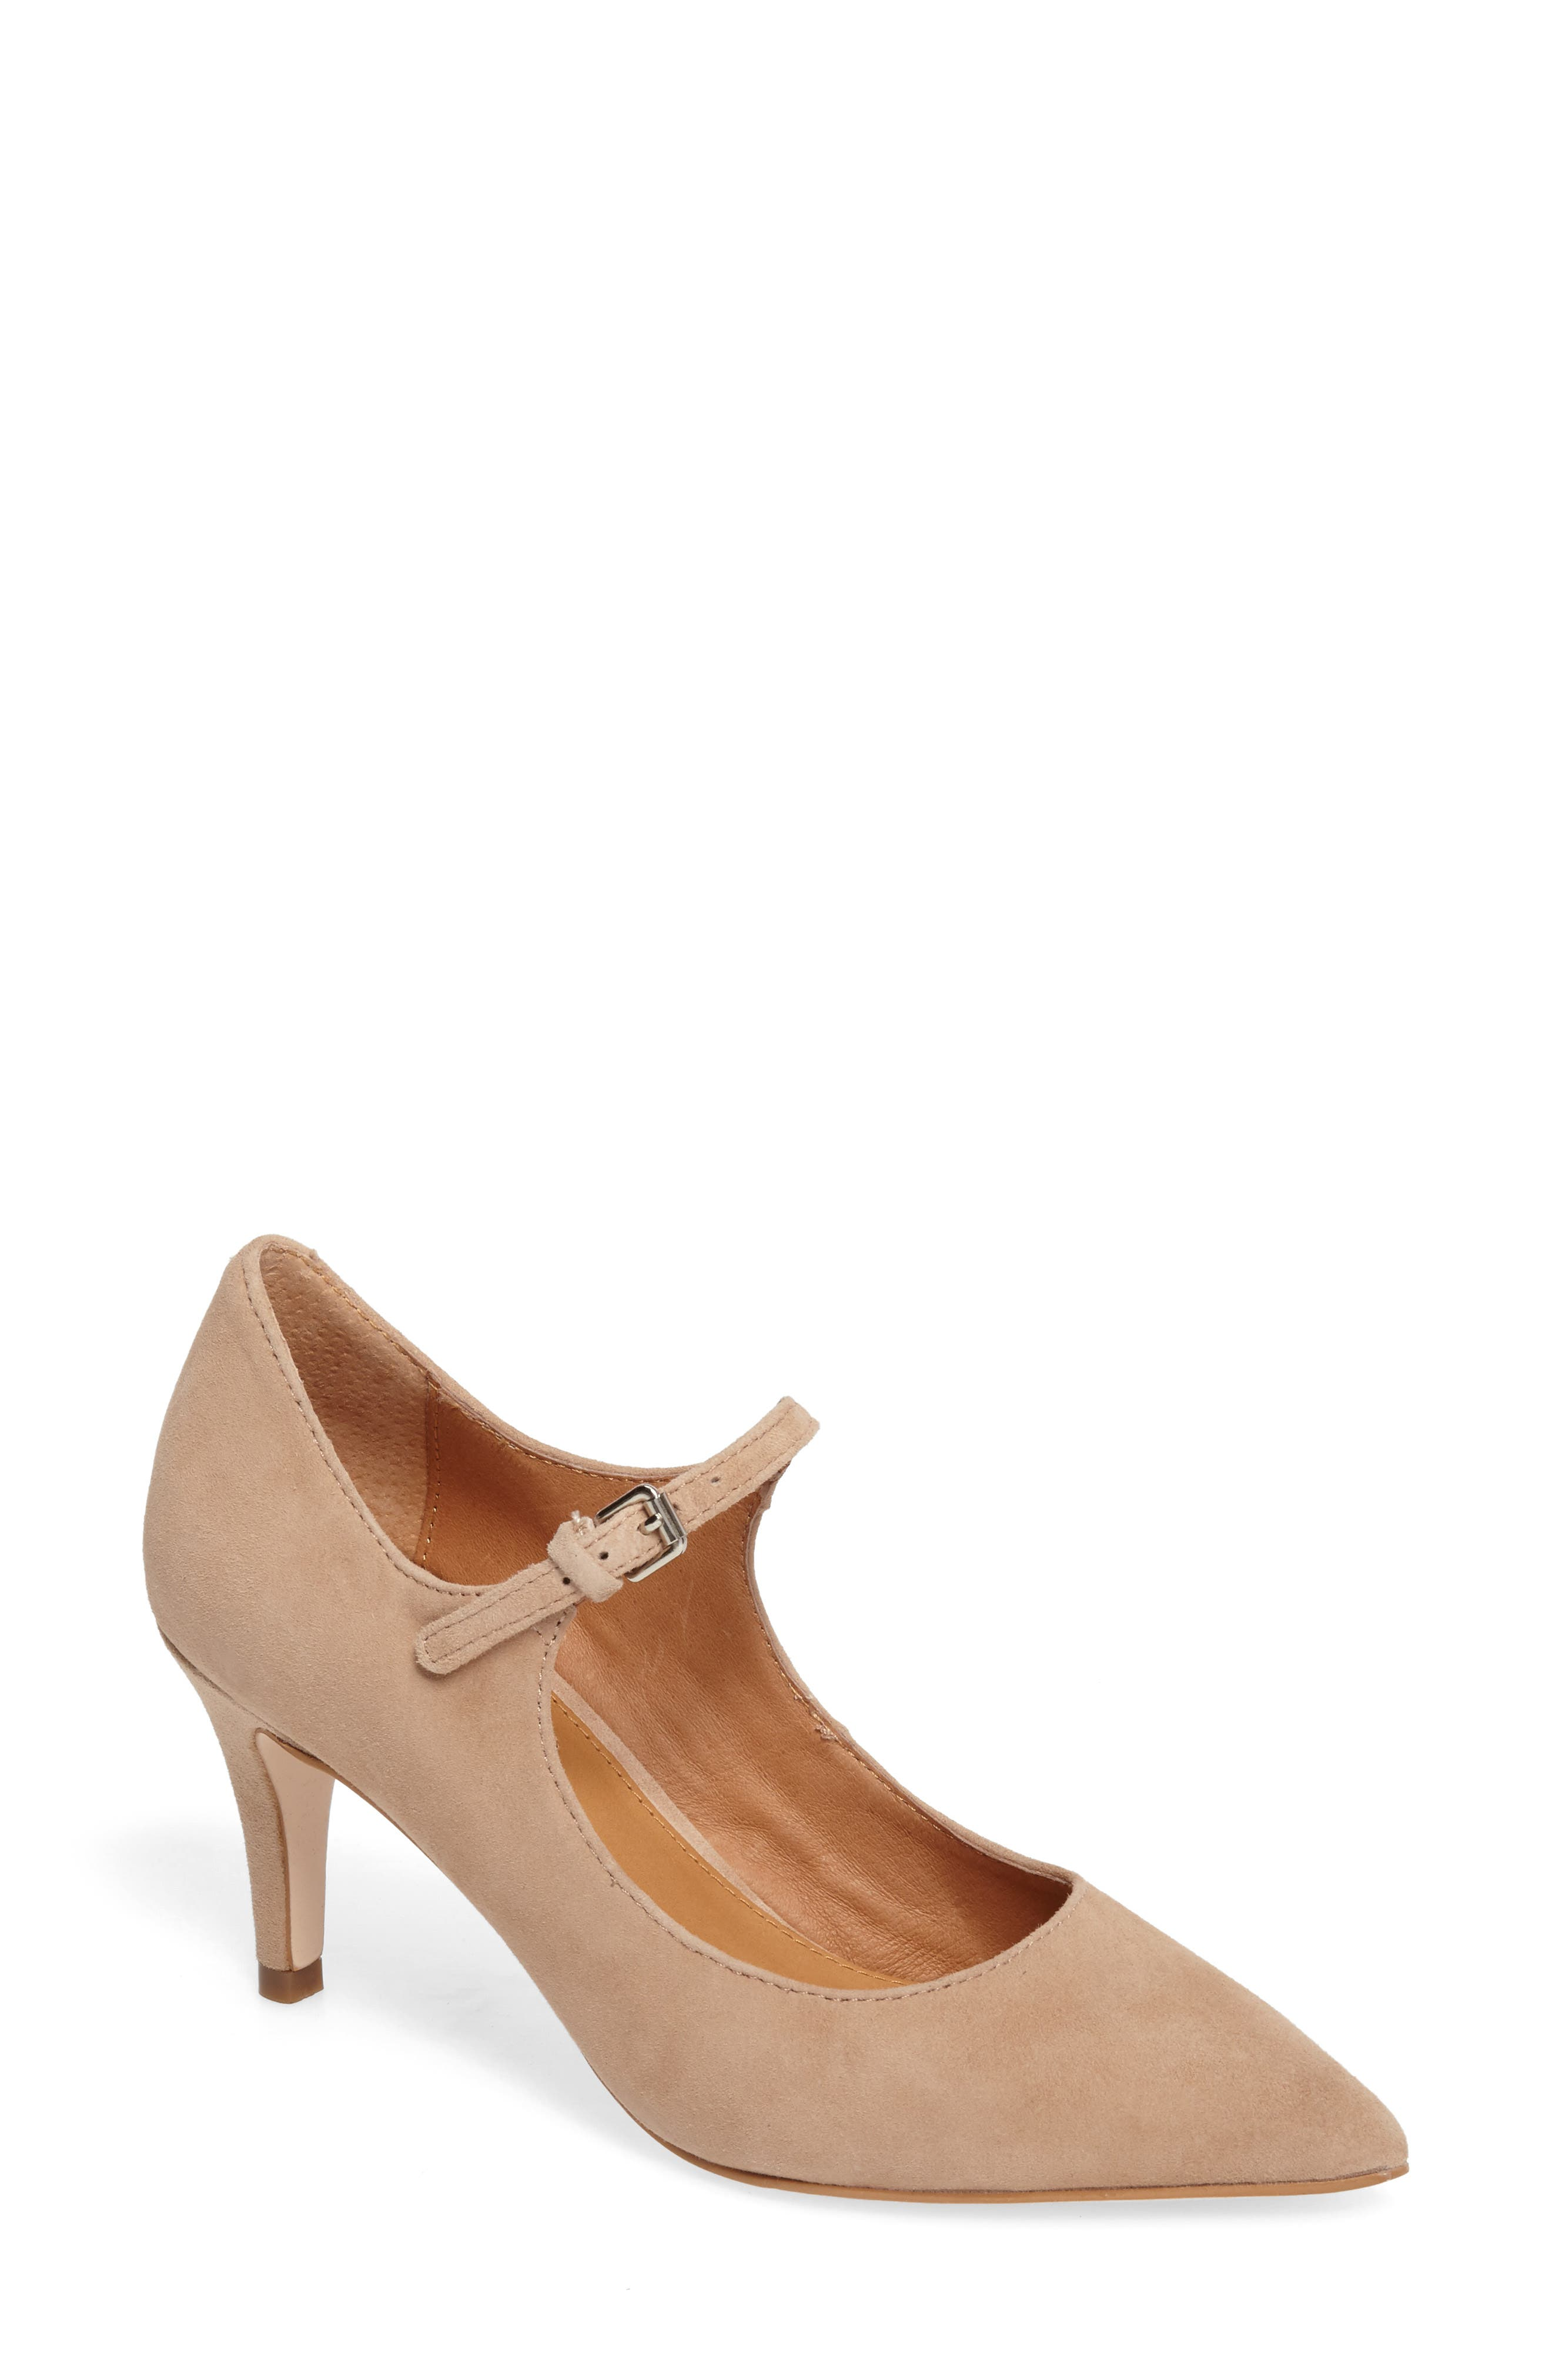 Coy Pointy Toe Pump,                             Main thumbnail 1, color,                             Dark Nude Suede